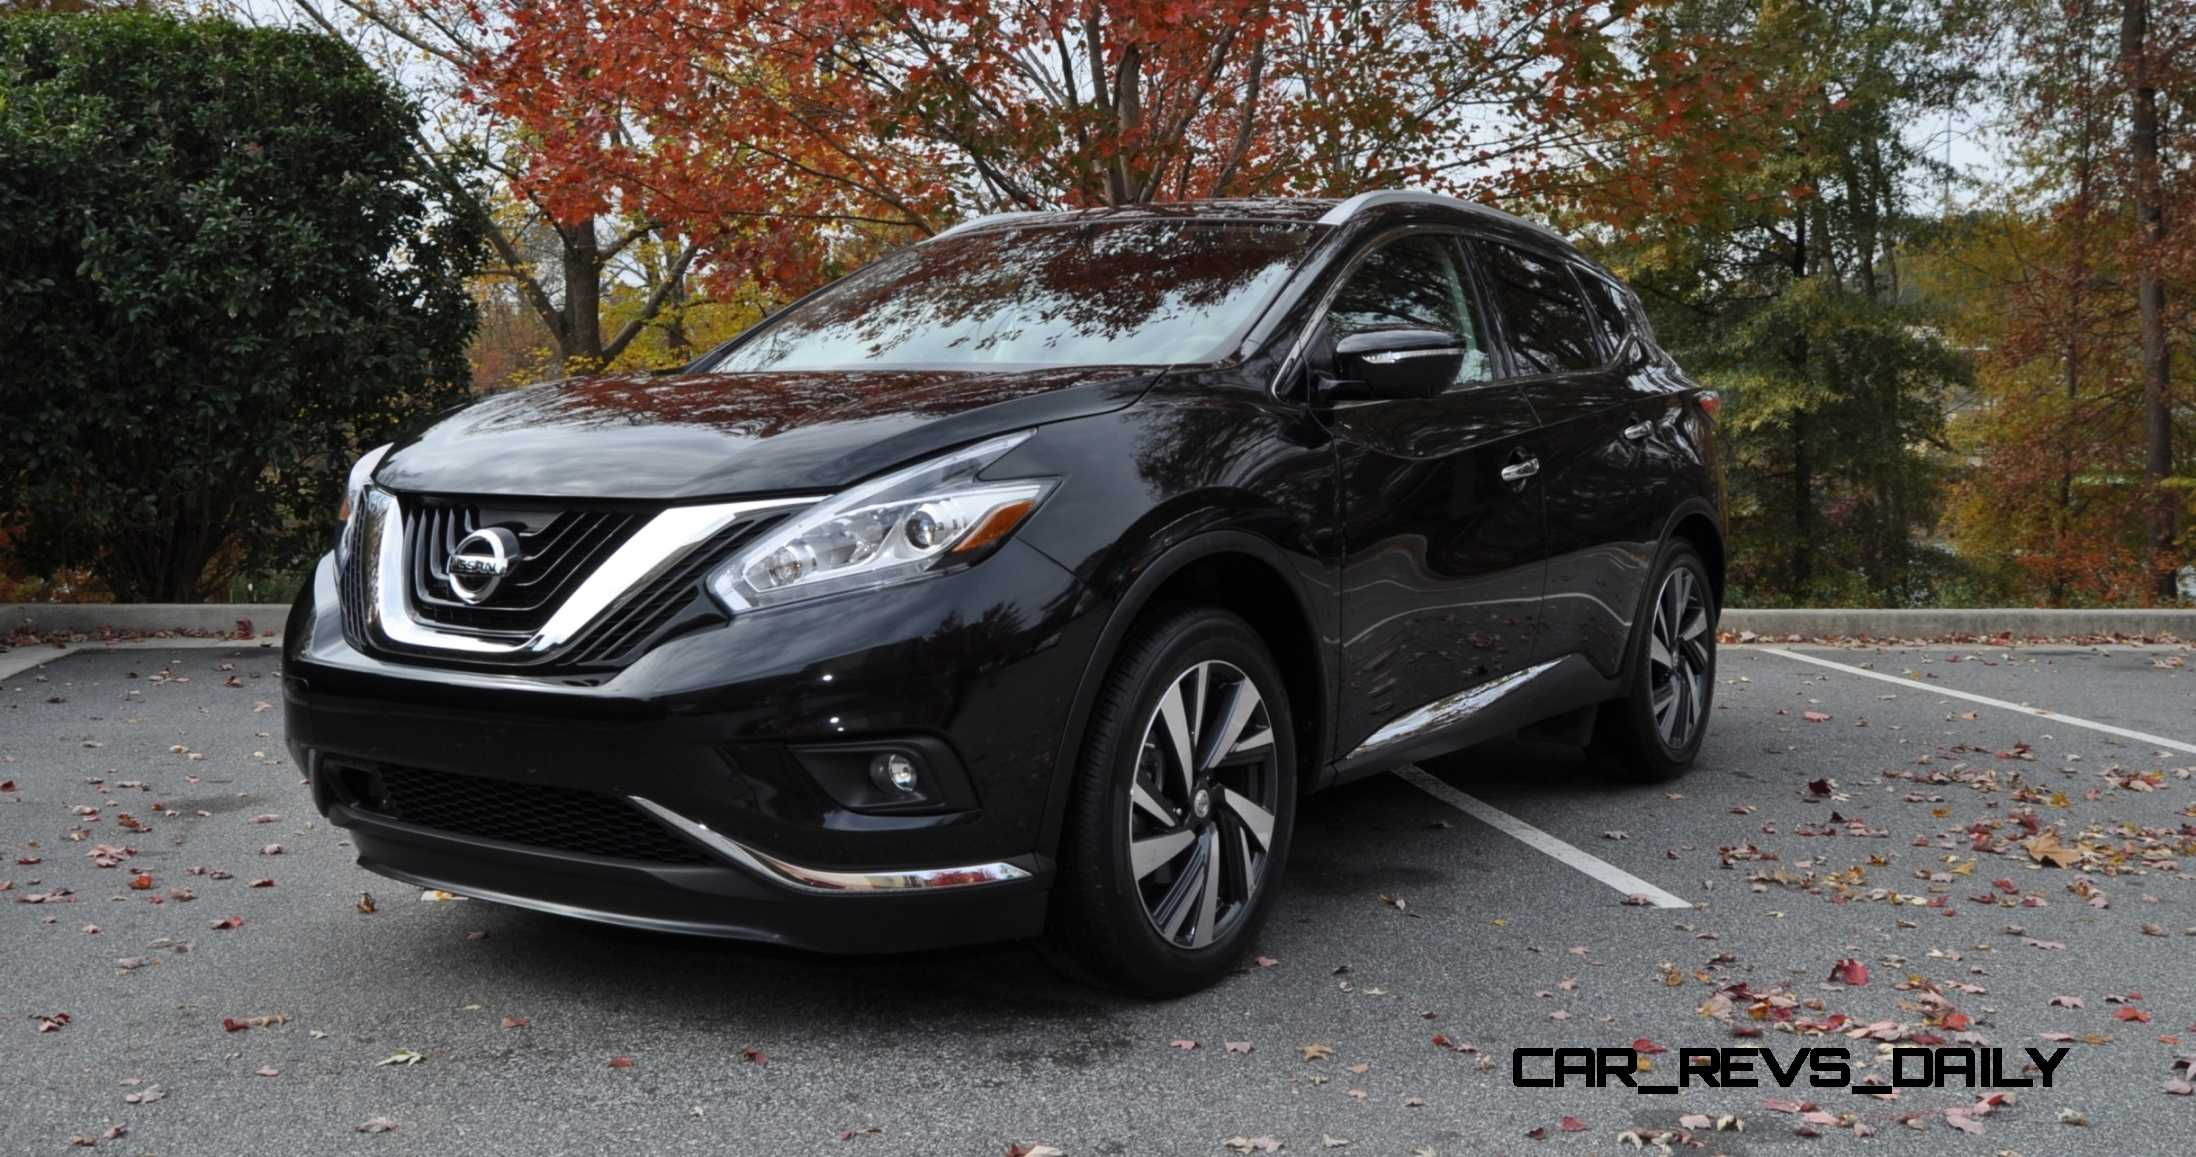 2017 Nissan Murano Reviews Ratings Prices Consumer Reports